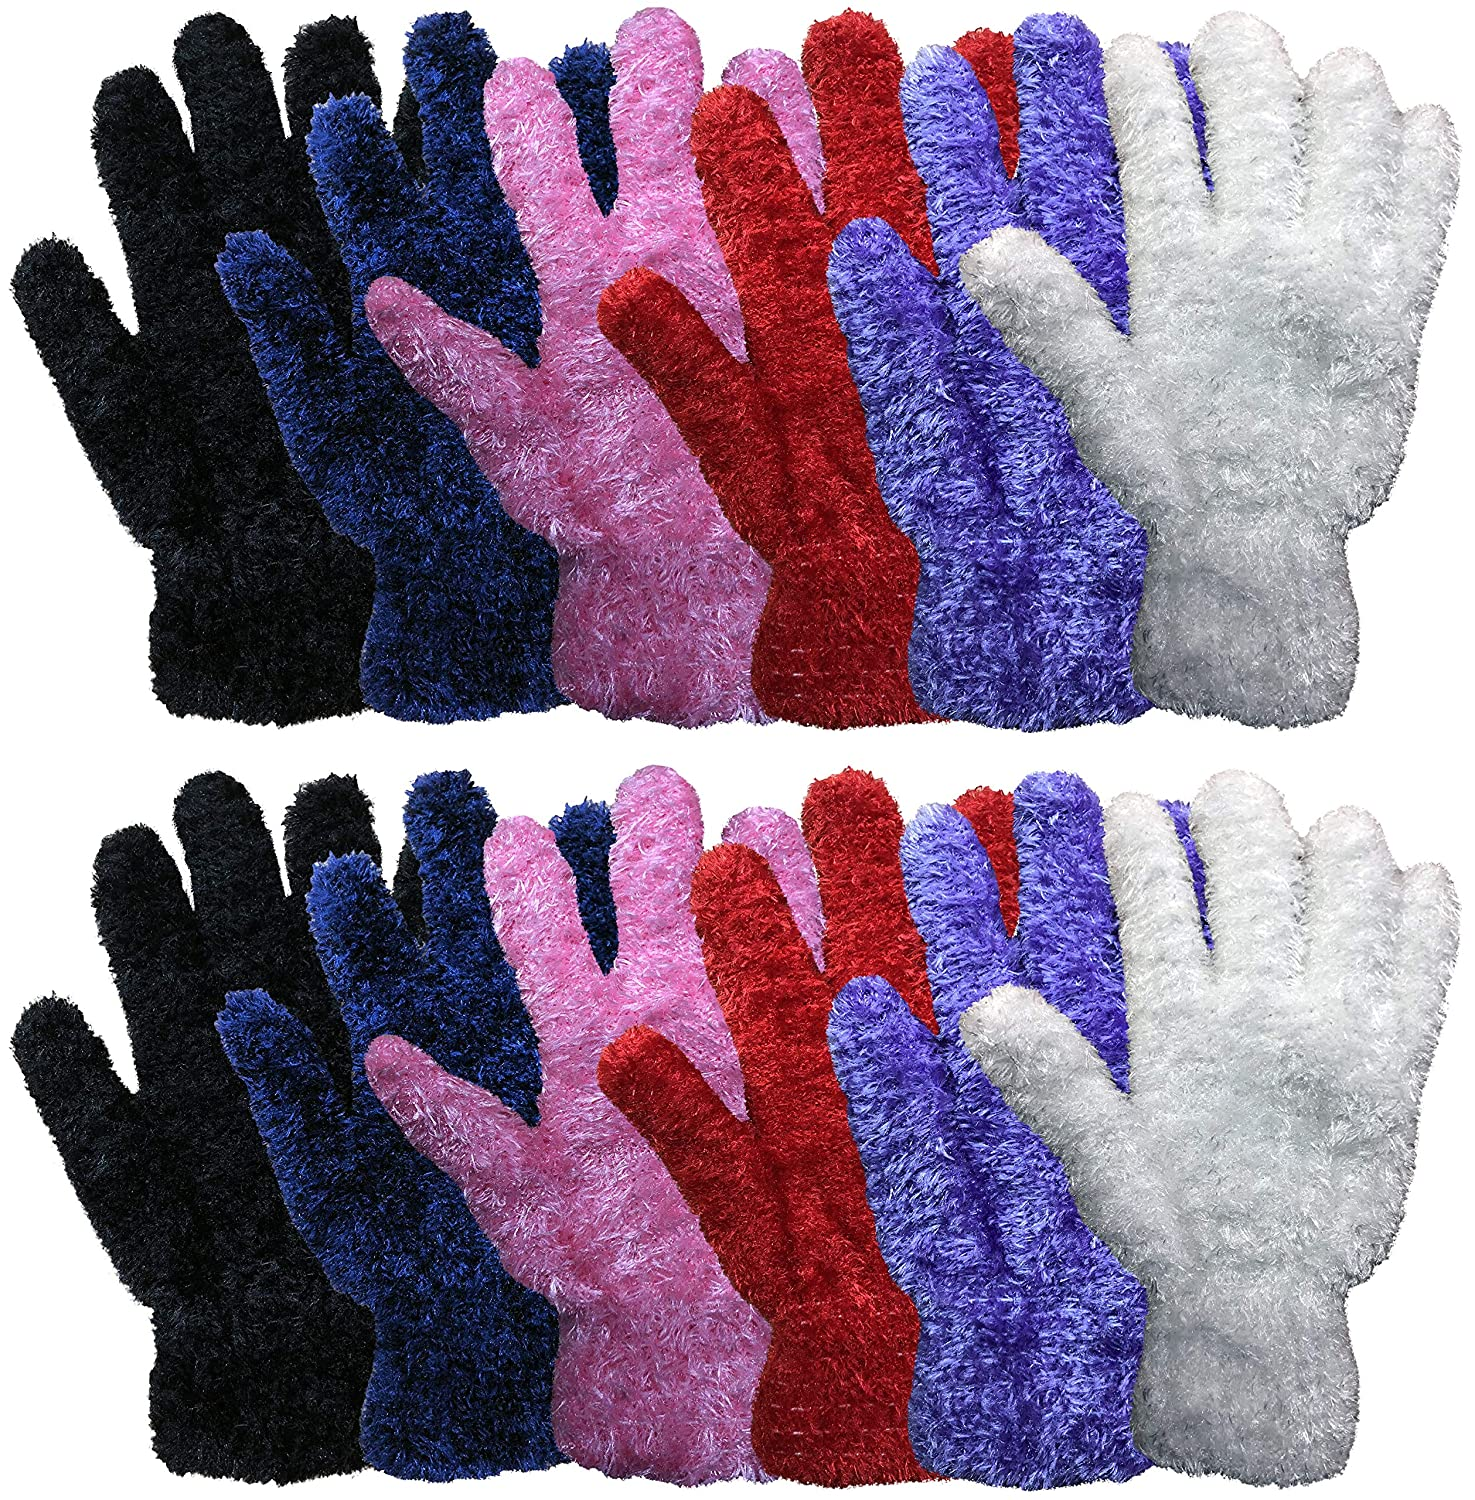 12 Pair Pack Of excell Kids Warm Winter Colorful Magic Stretch Gloves And Mittens 152.dz